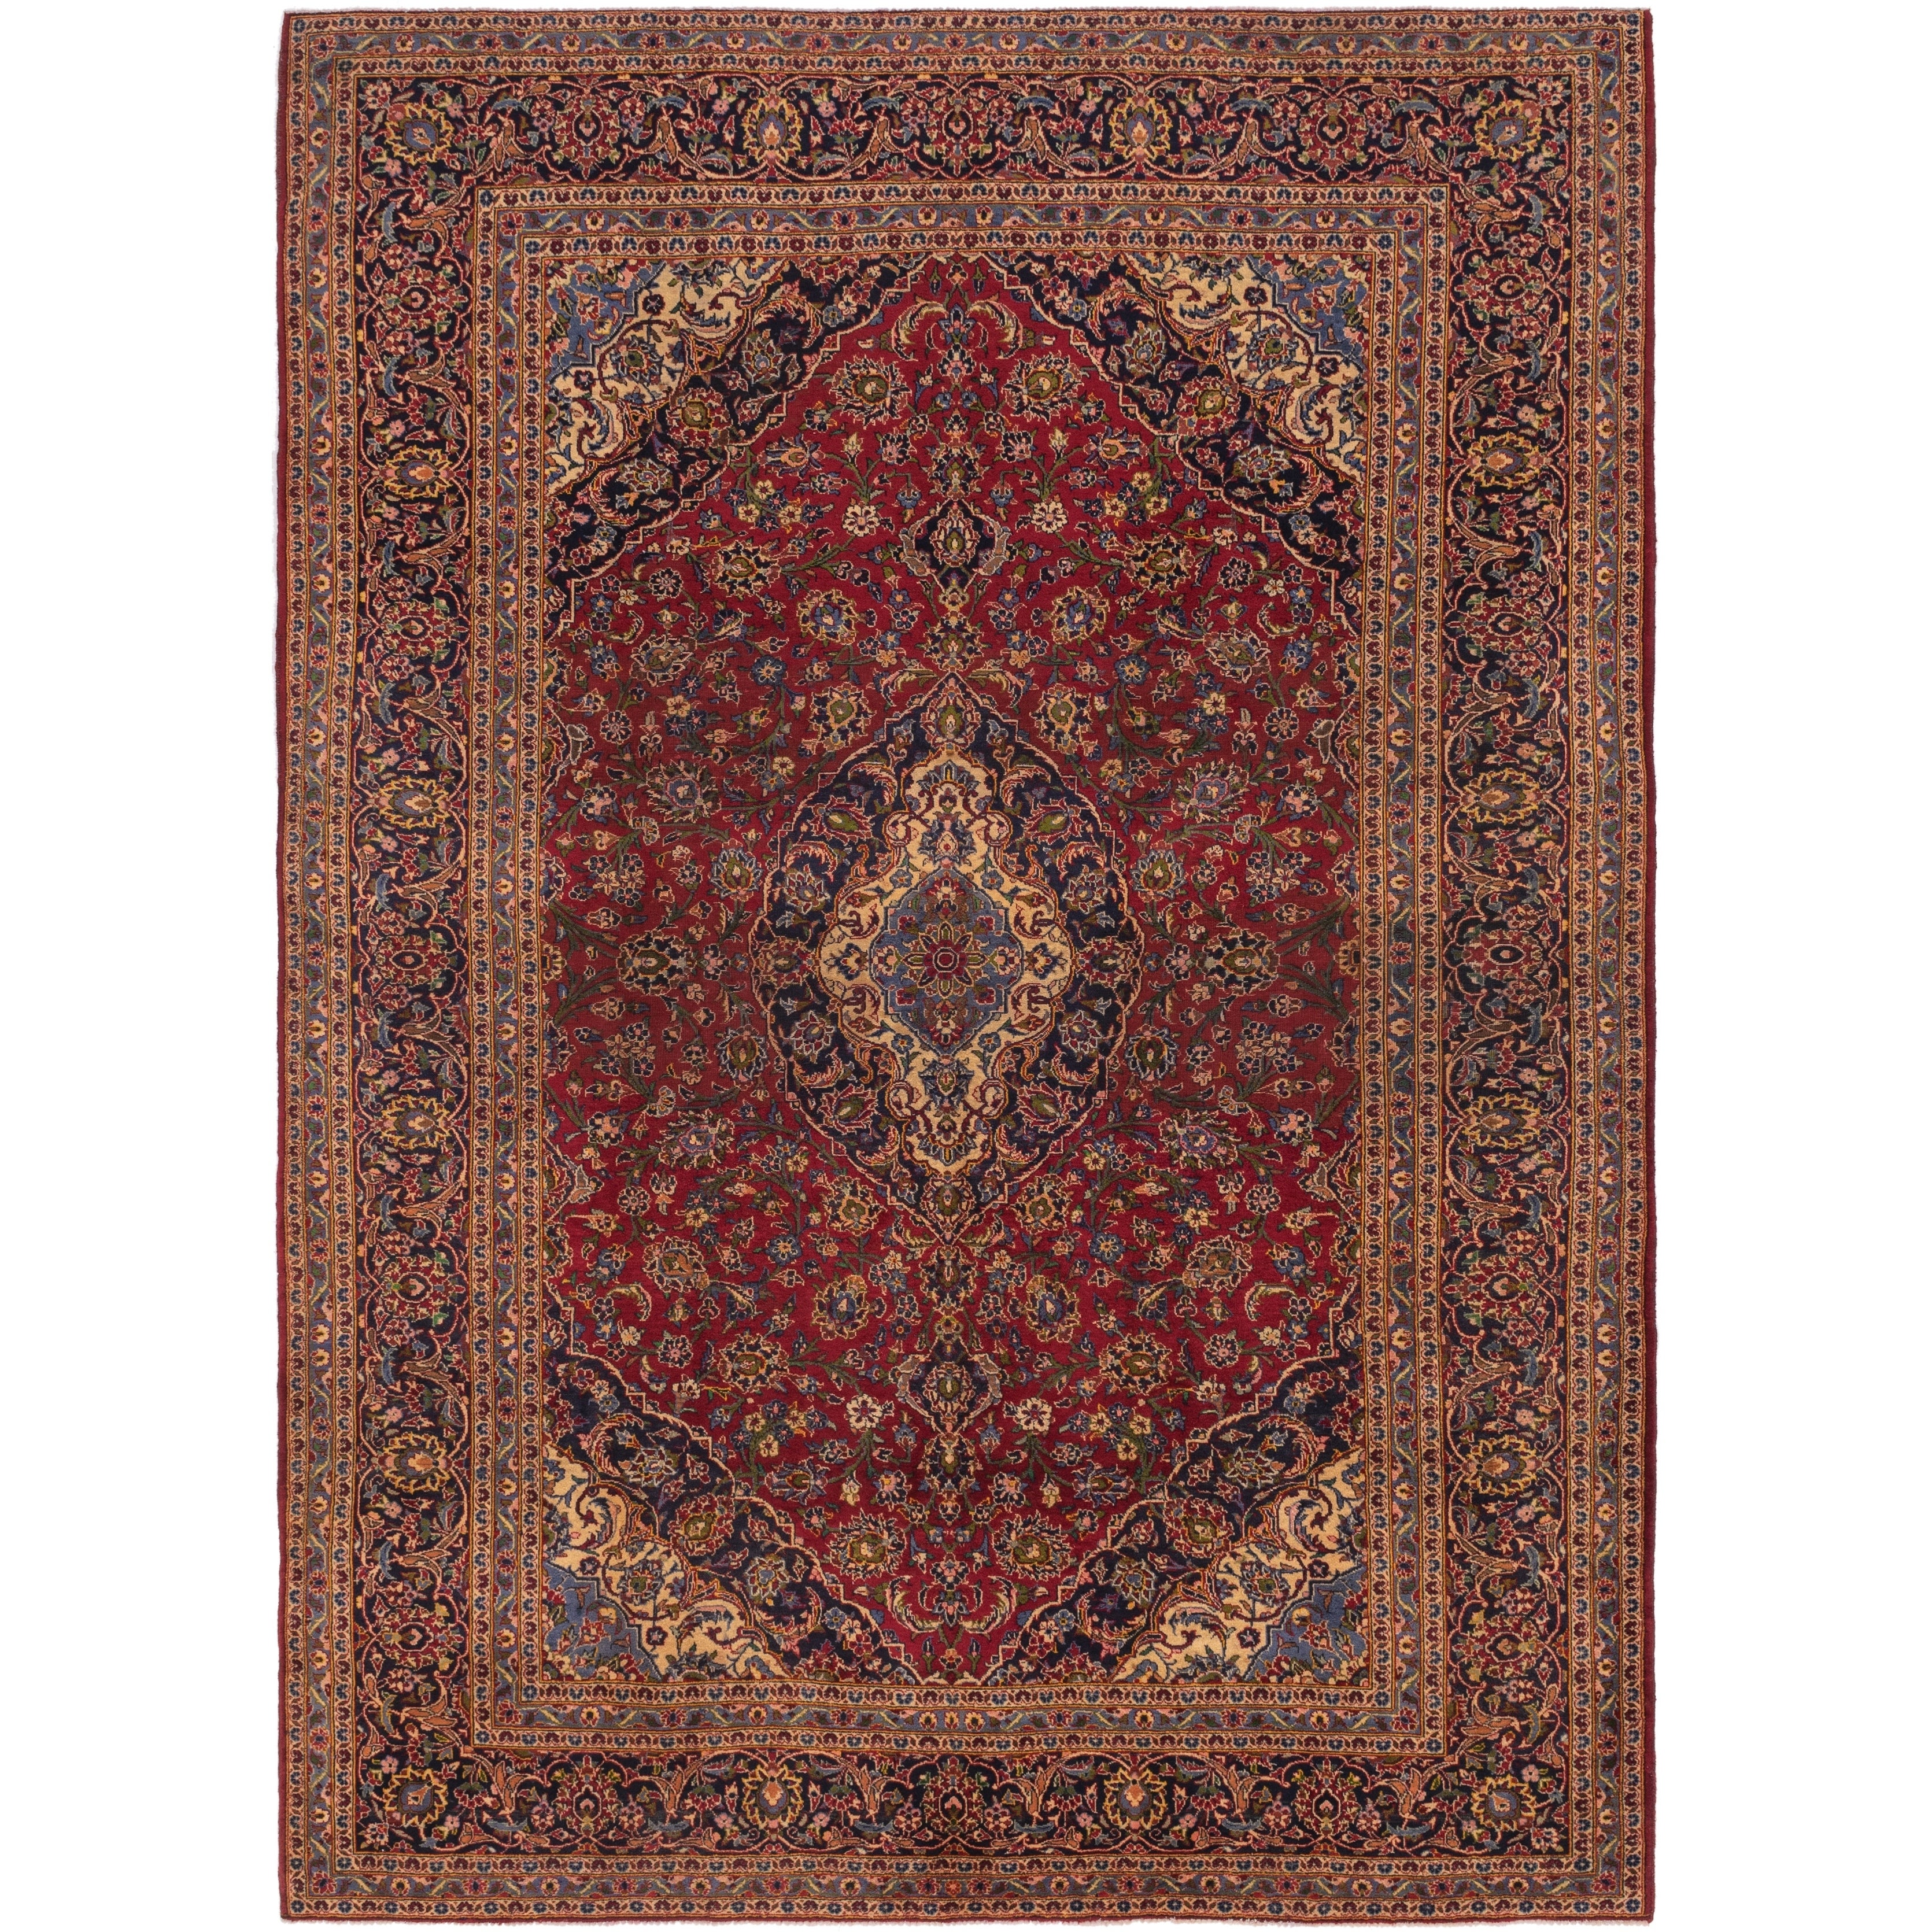 Hand Knotted Kashan Semi Antique Wool Area Rug - 9 10 x 13 7 (Red - 9 10 x 13 7)